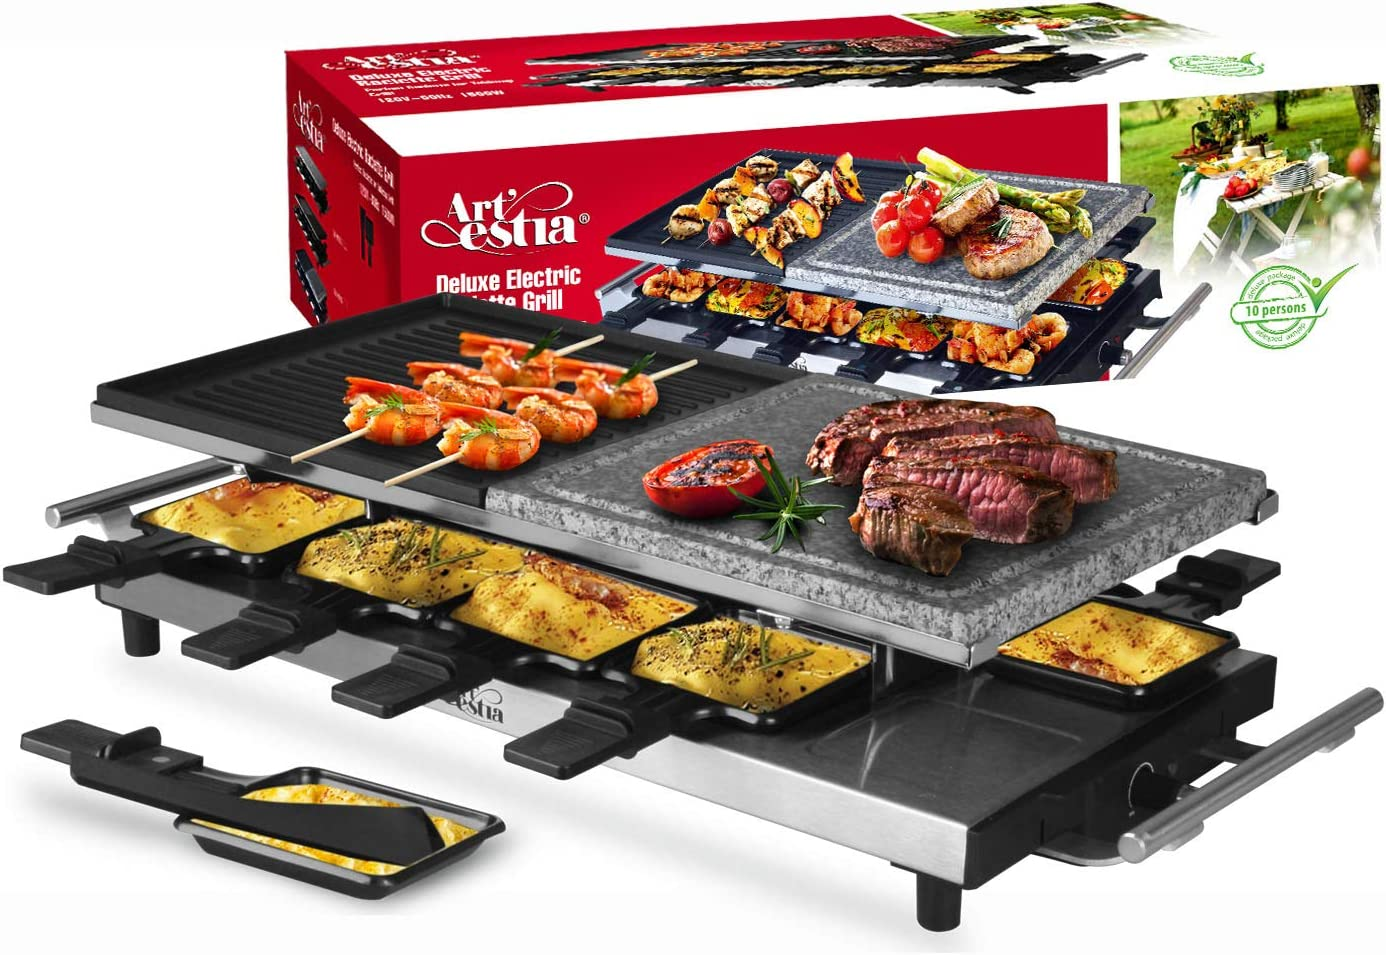 Artestia 10 Person Large Stainless Steel Electric Raclette Grill with Two Half Size Plates, High Power 1500W Stainless Steel Half Stone Half Aluminum for 10 persons